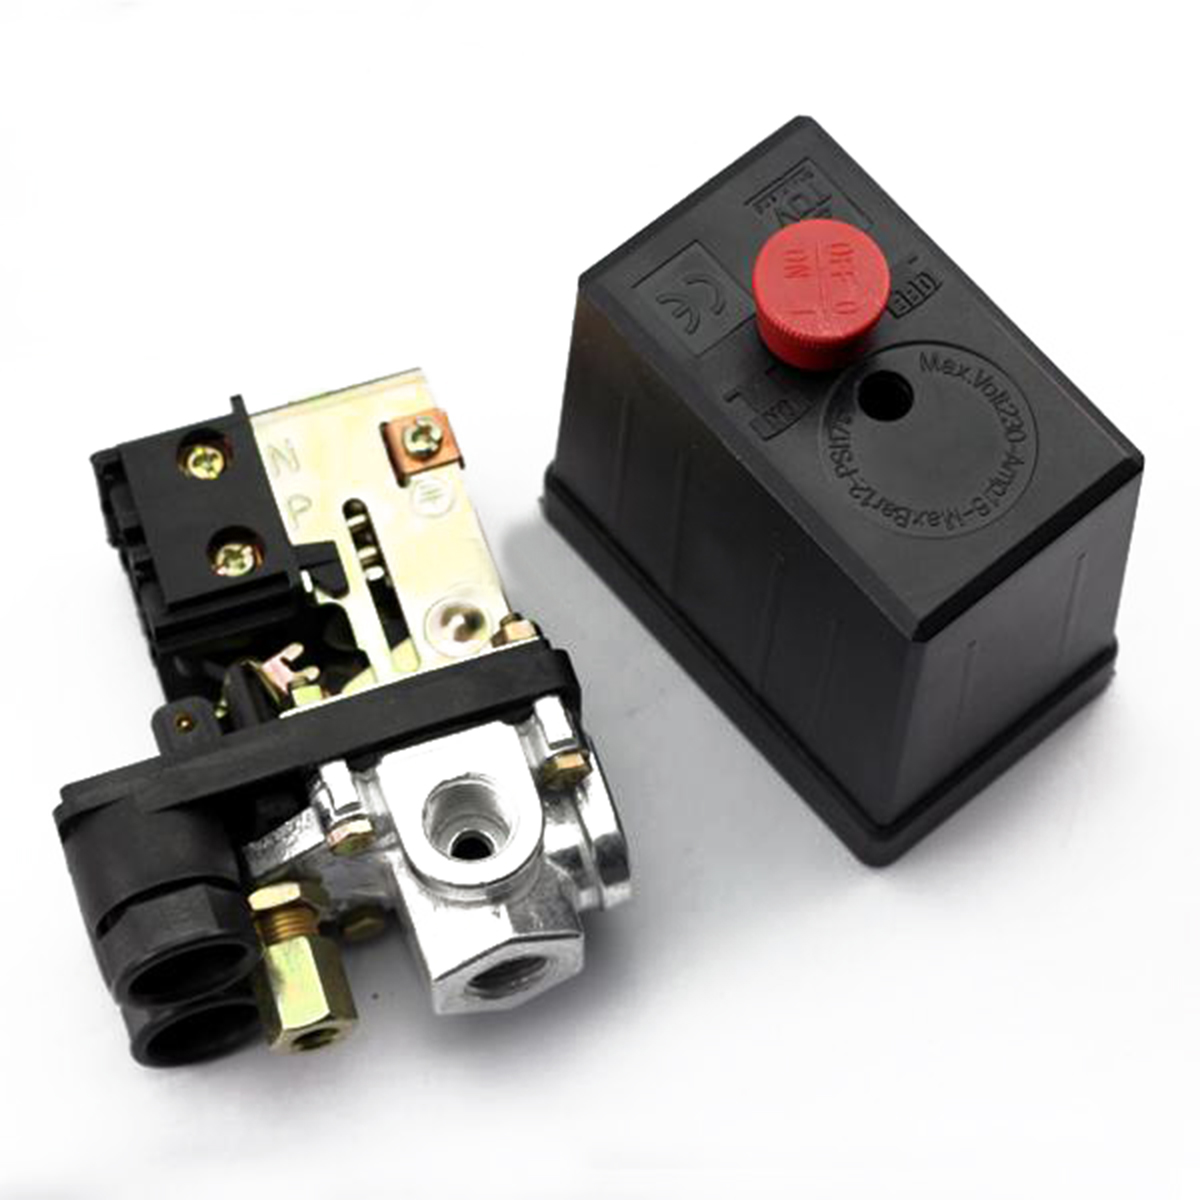 Black Heavy Duty Air Compressor Pressure Switch 240V 16A 90PSI -120PSI Mayitr Practical Auto Switch Control Valve 82*82*52mm vertical type replacement part 1 port spdt air compressor pump pressure on off knob switch control valve 80 115 psi ac220 240v